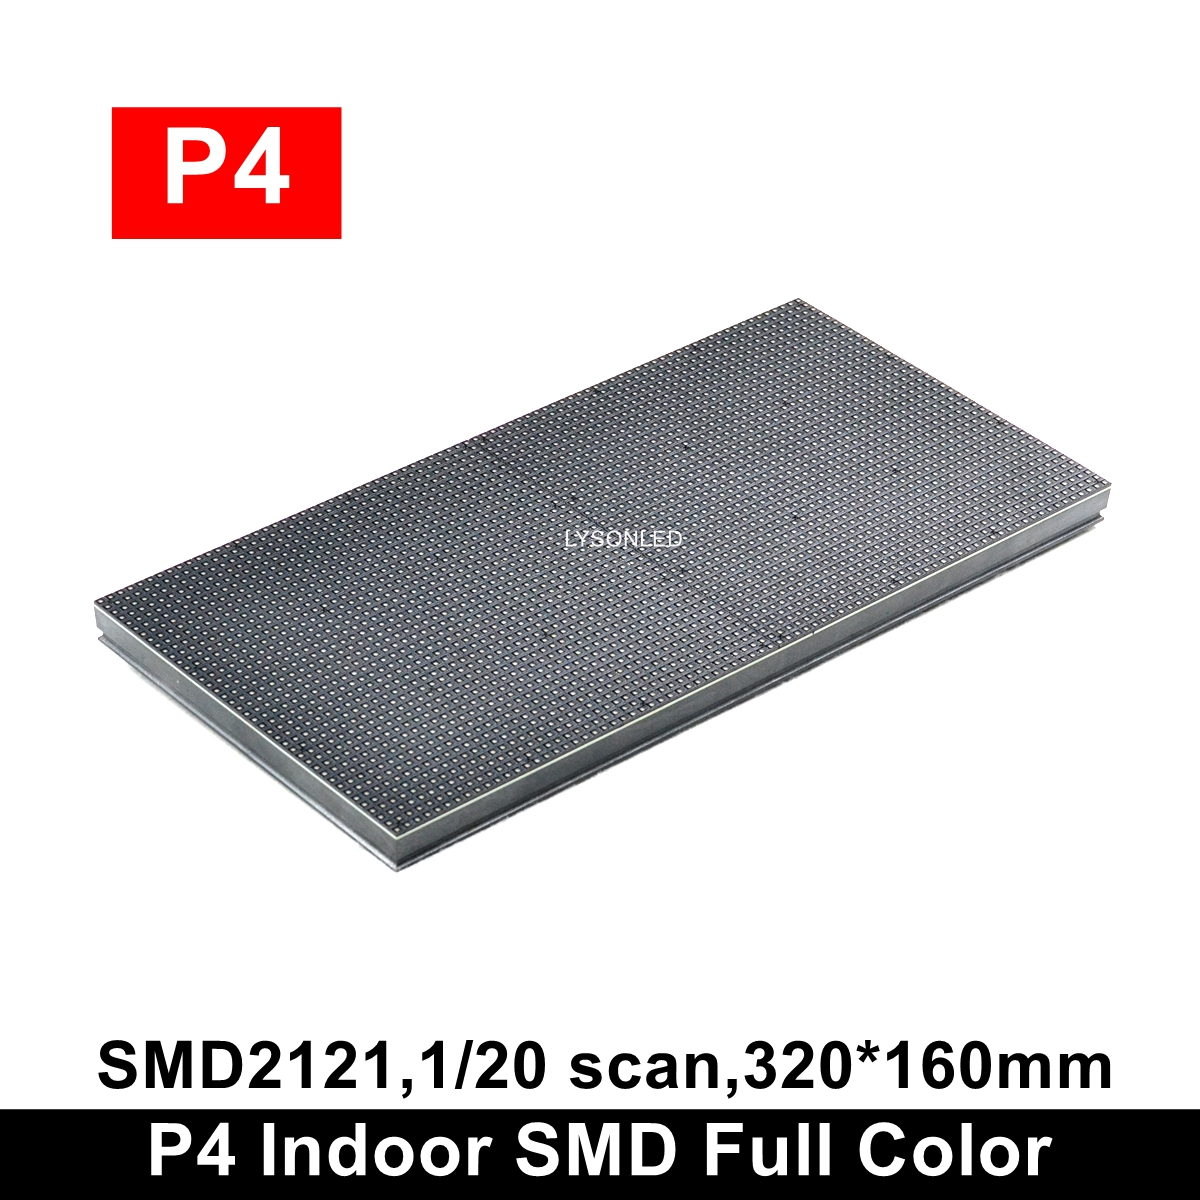 Hot Modular Indoor SMD2121 Full Color P4 LED Module 320x160mm, Interior Electronic LED Display Panel P4 LED Panel 40x20 Dots